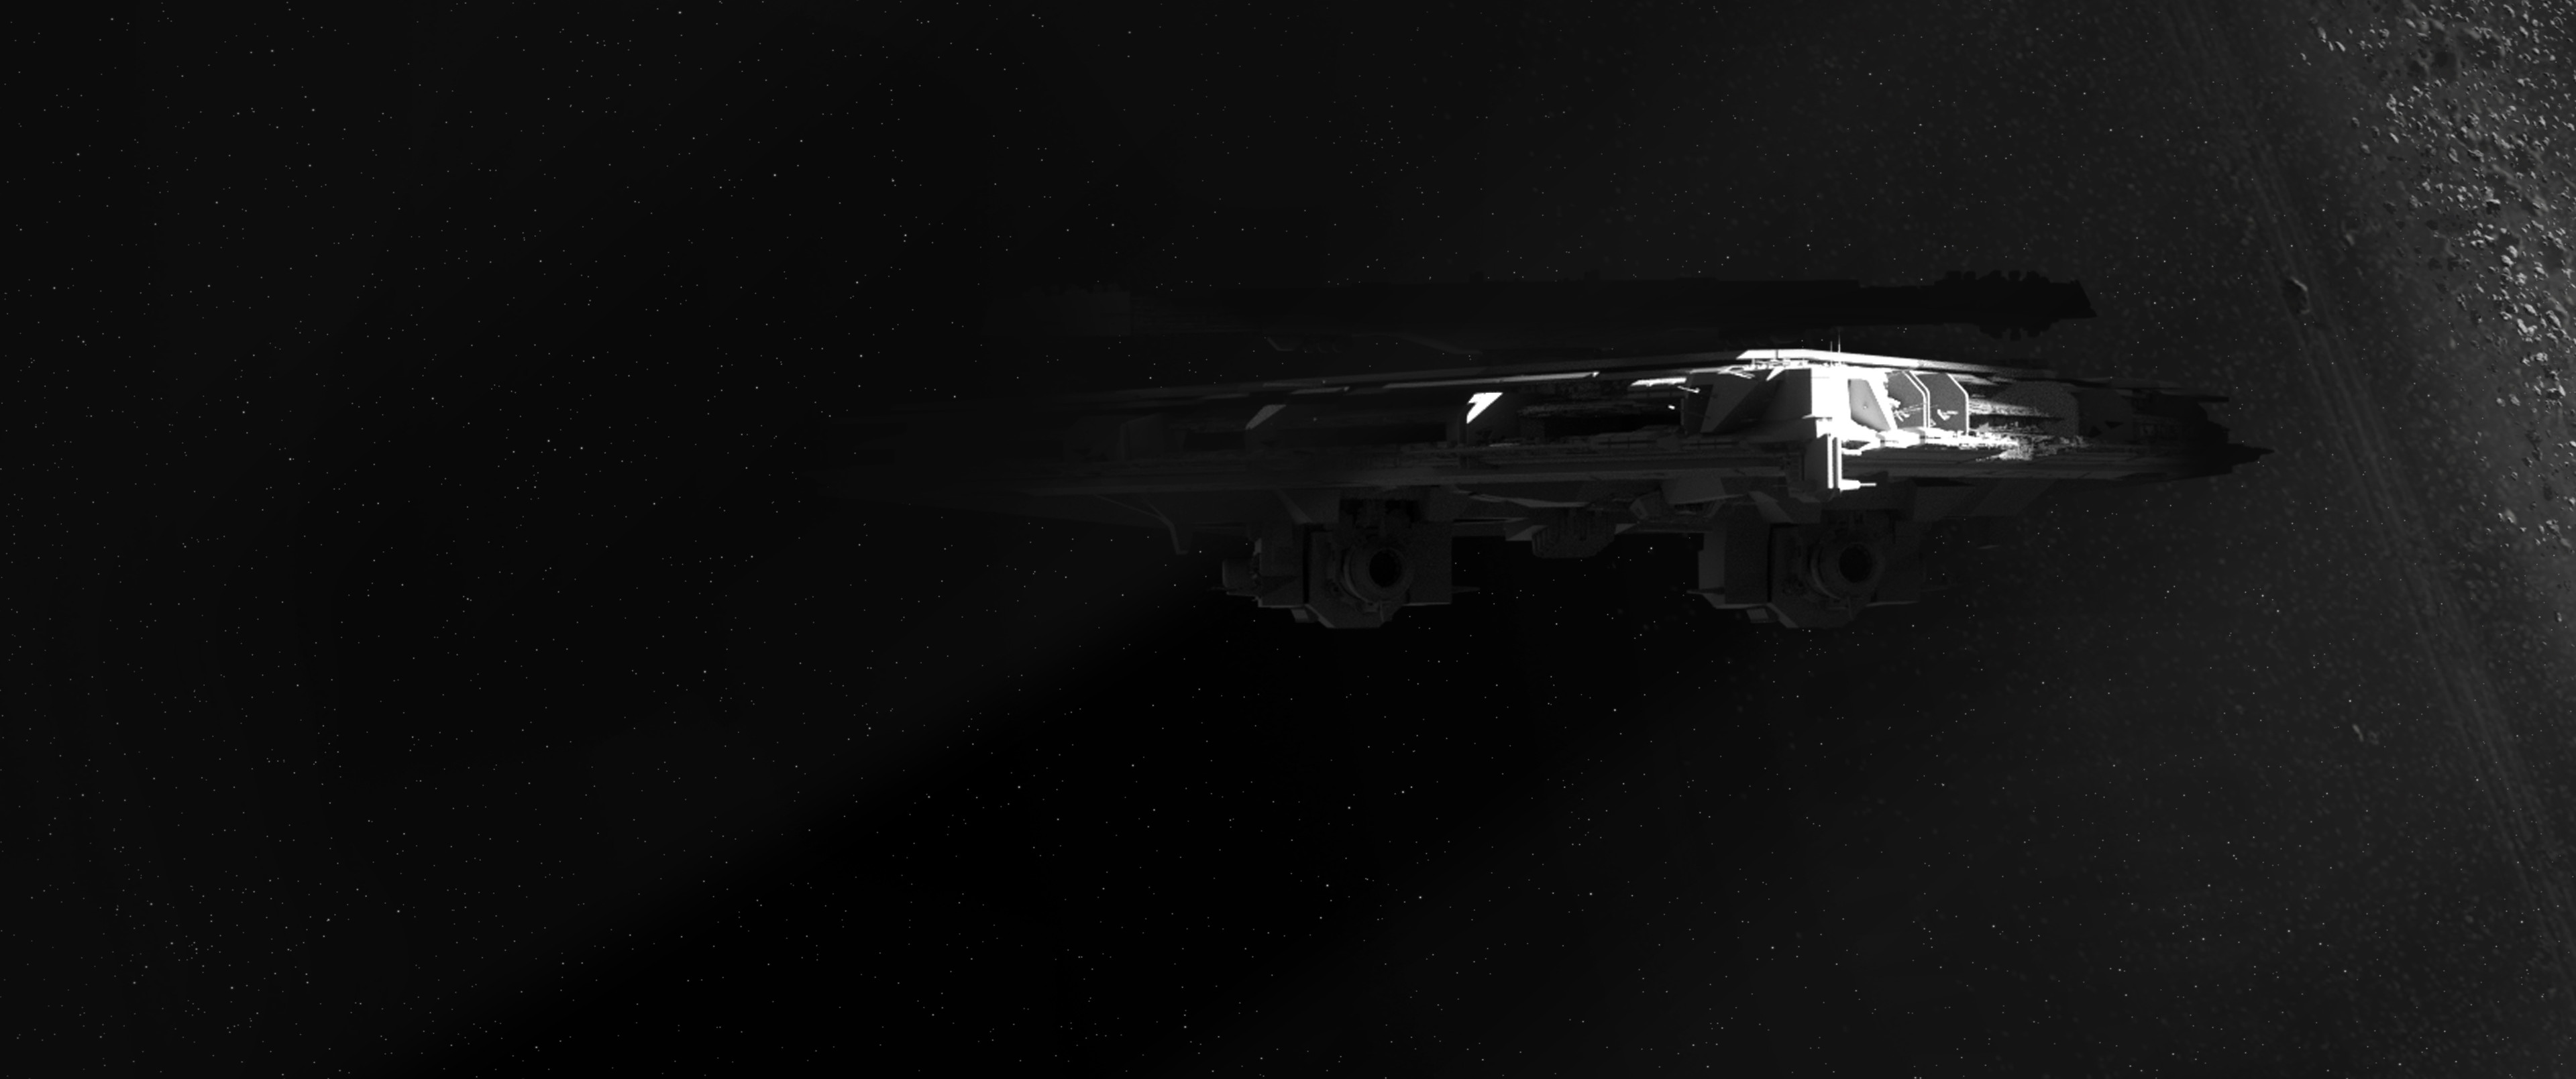 Proposition of shot to reveal the new first order destroyer. Coming out of the shadow of an asteroid belt.